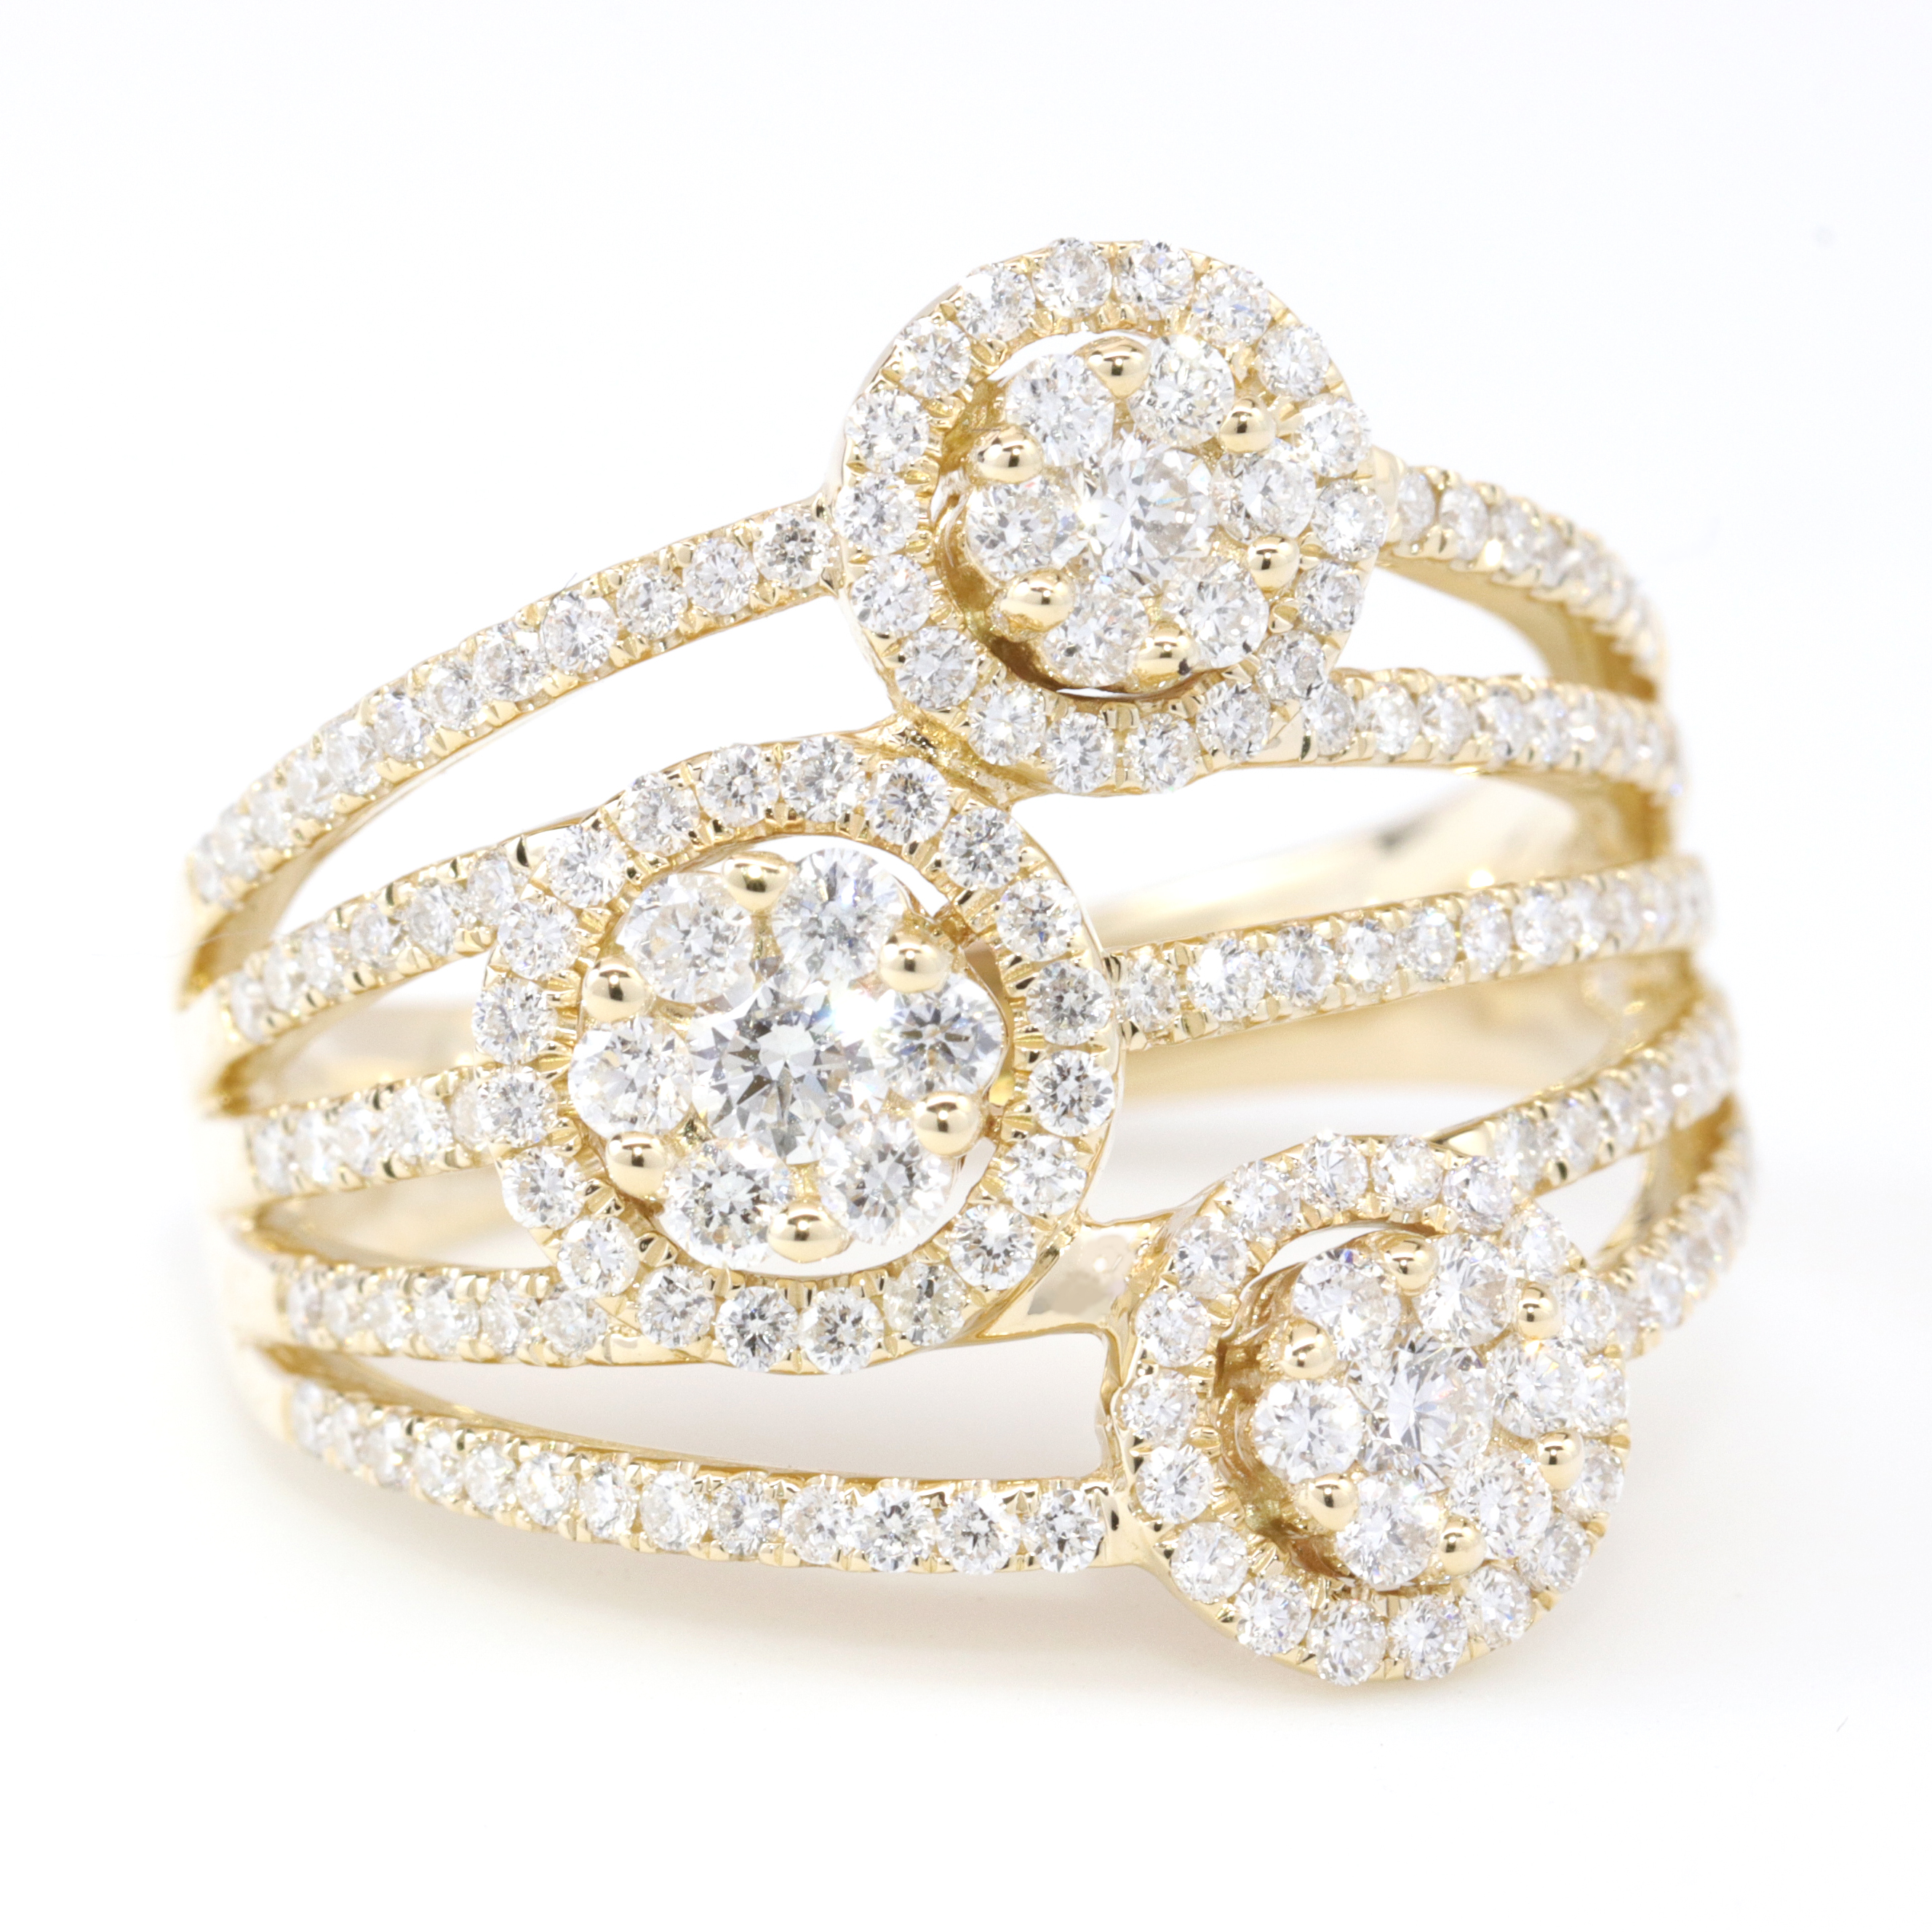 unique ring jewelers denver frame surrounding rings center diamonds scalloped yellow gold halo colorado platinum cronin greater diamond portfolio in holding round circular engagement with